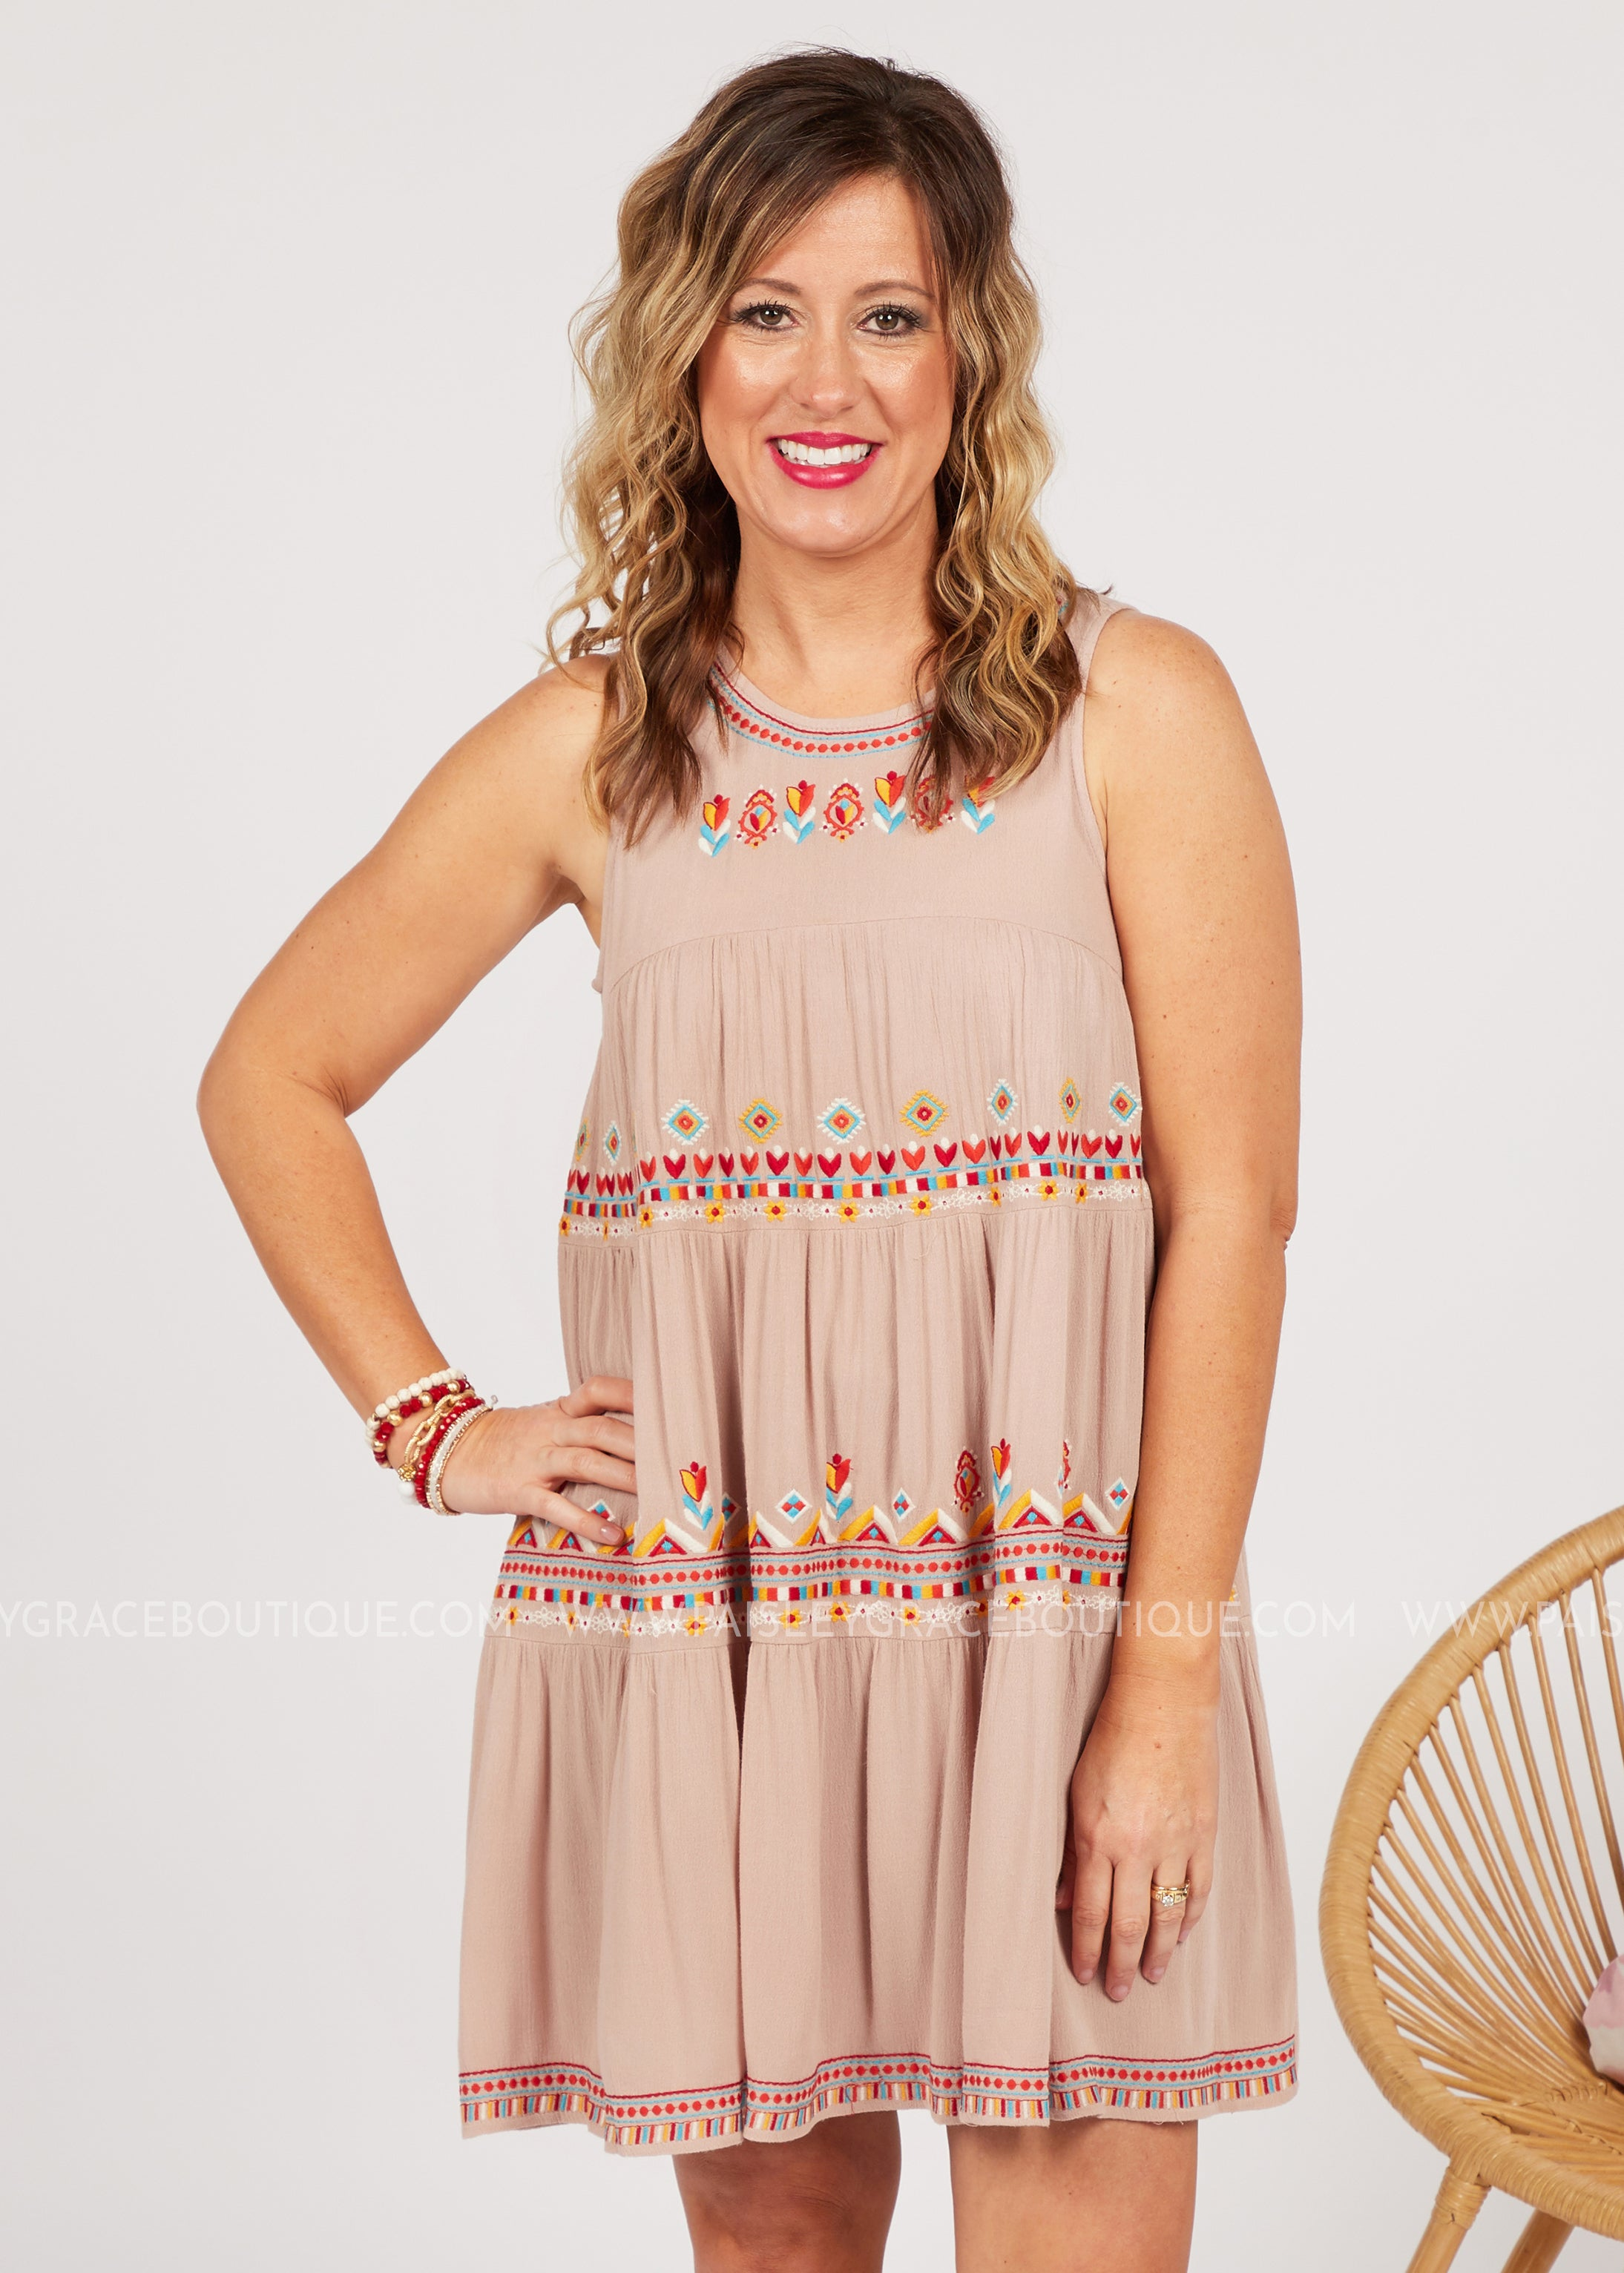 Desert Flame Embroidered Dress - FINAL SALE